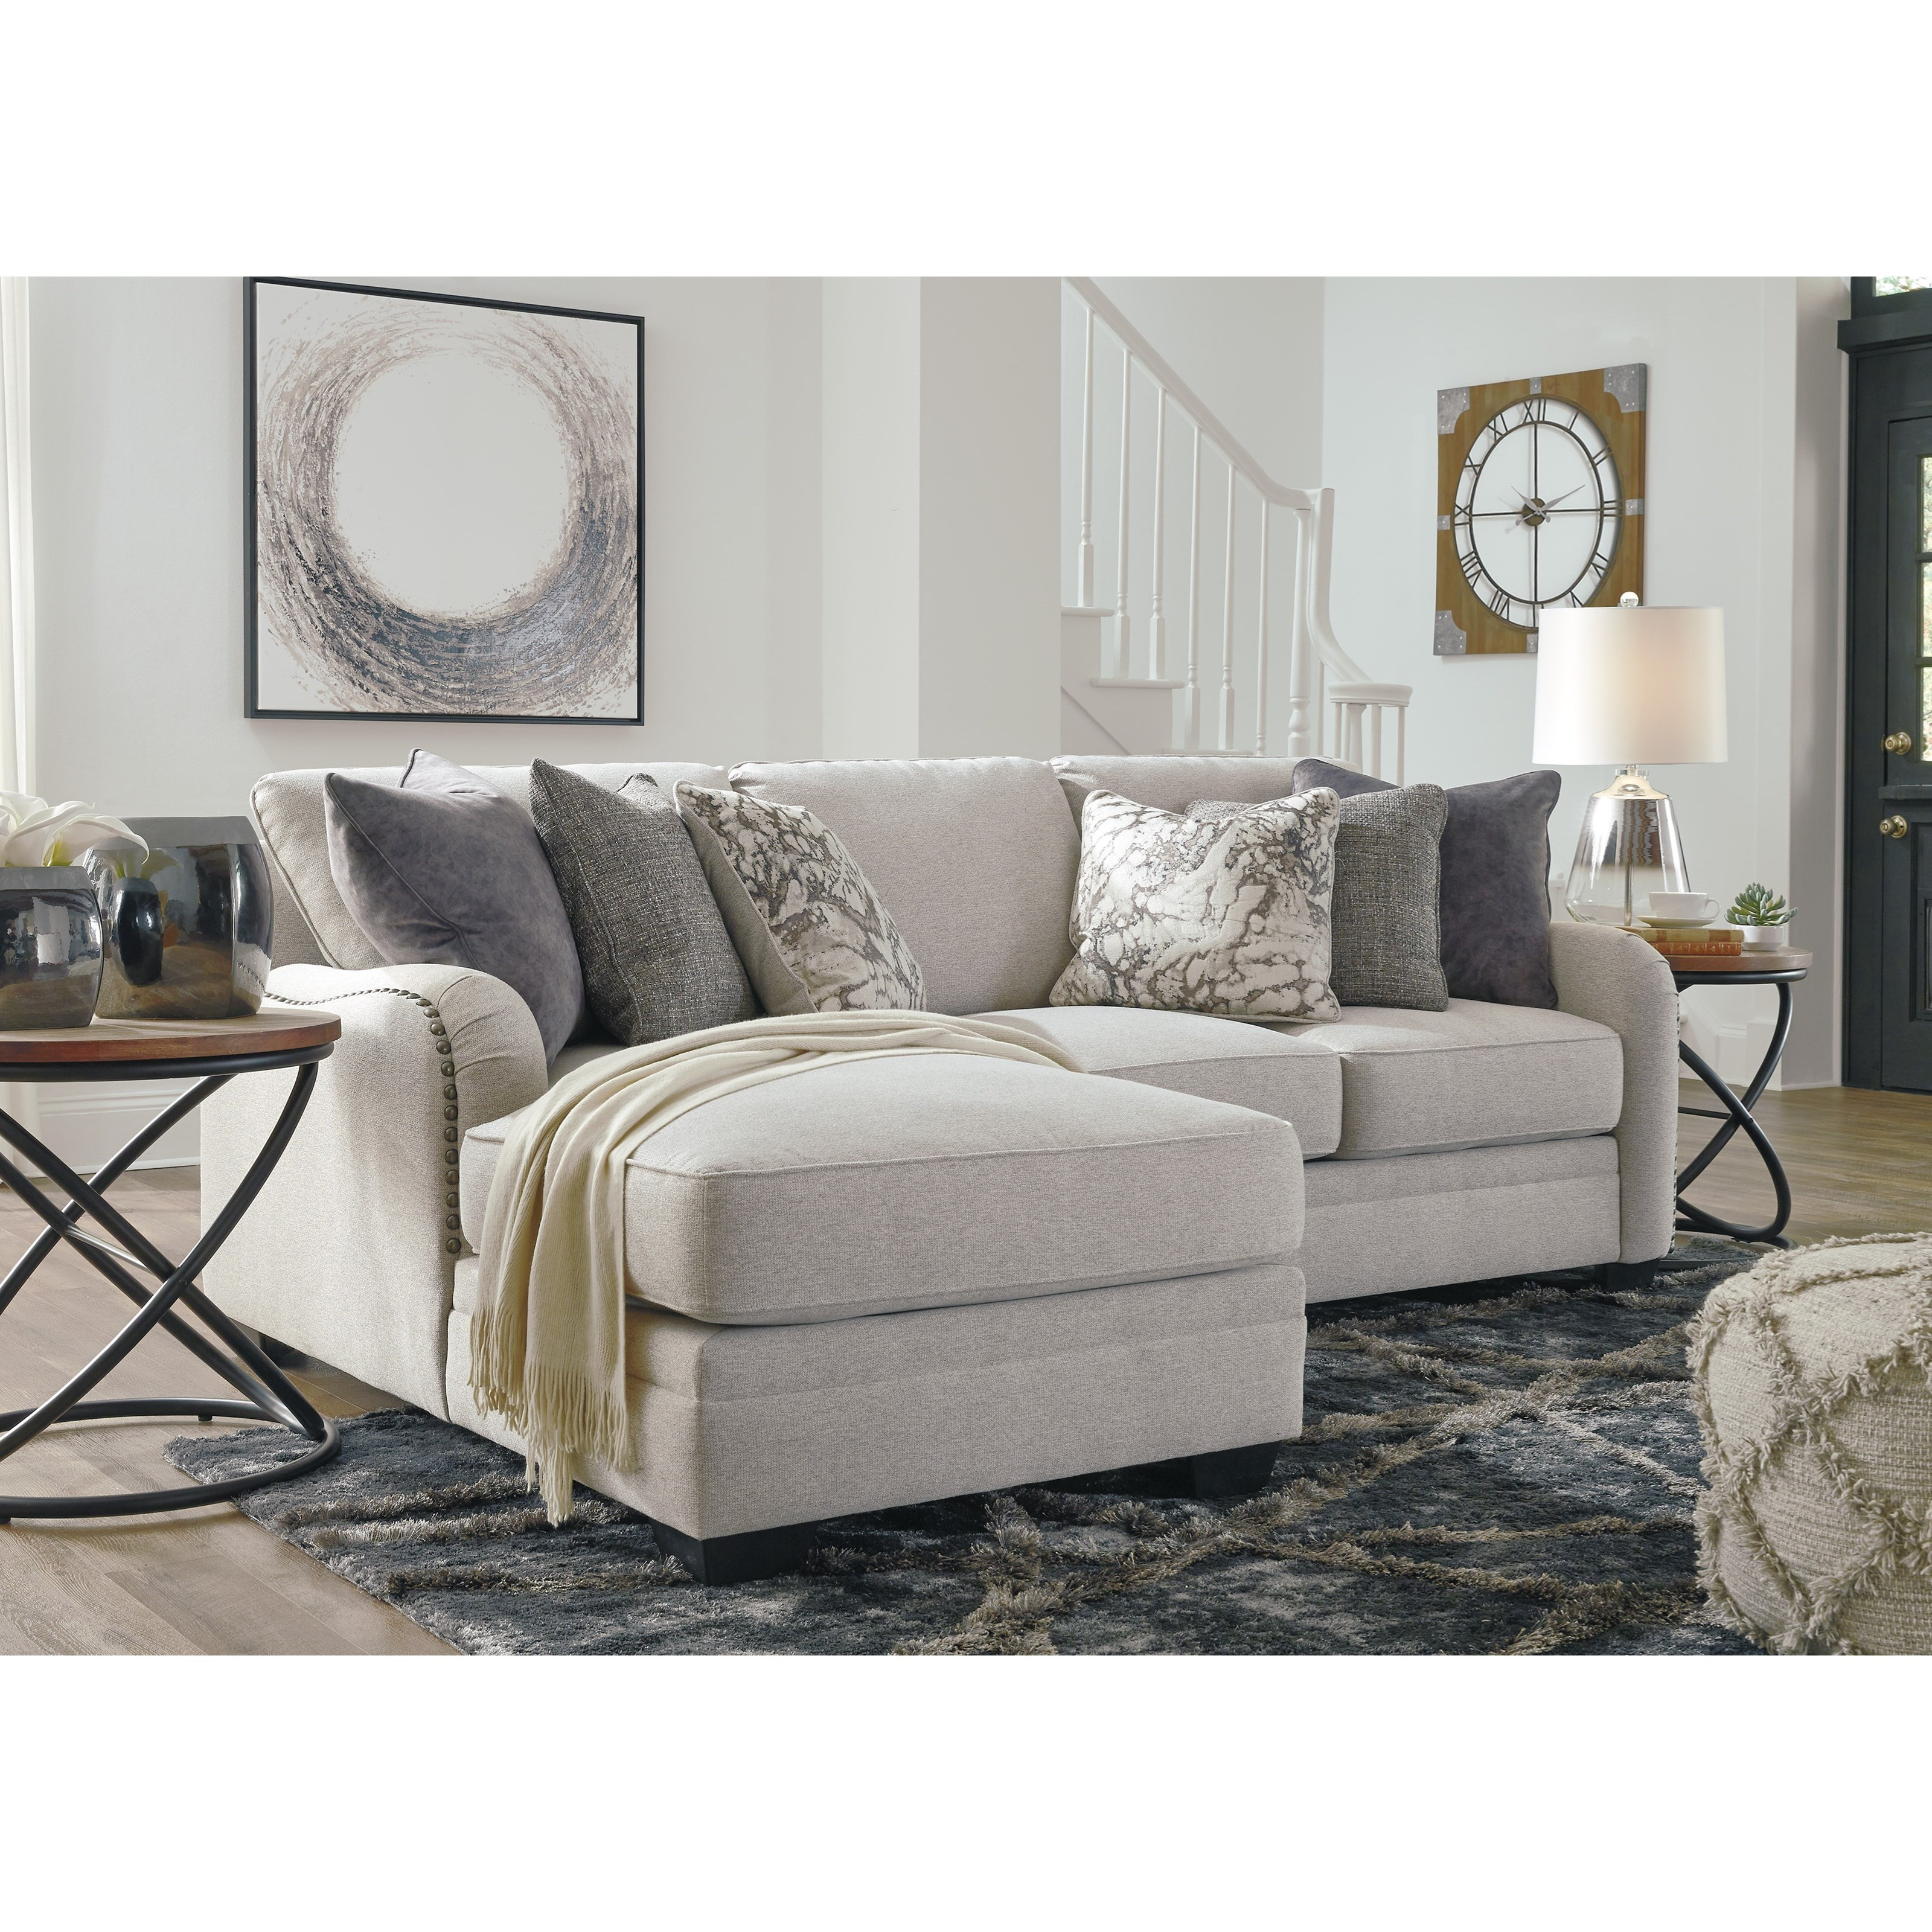 Dellara 2-Piece Sectional by Benchcraft at Walker's Furniture